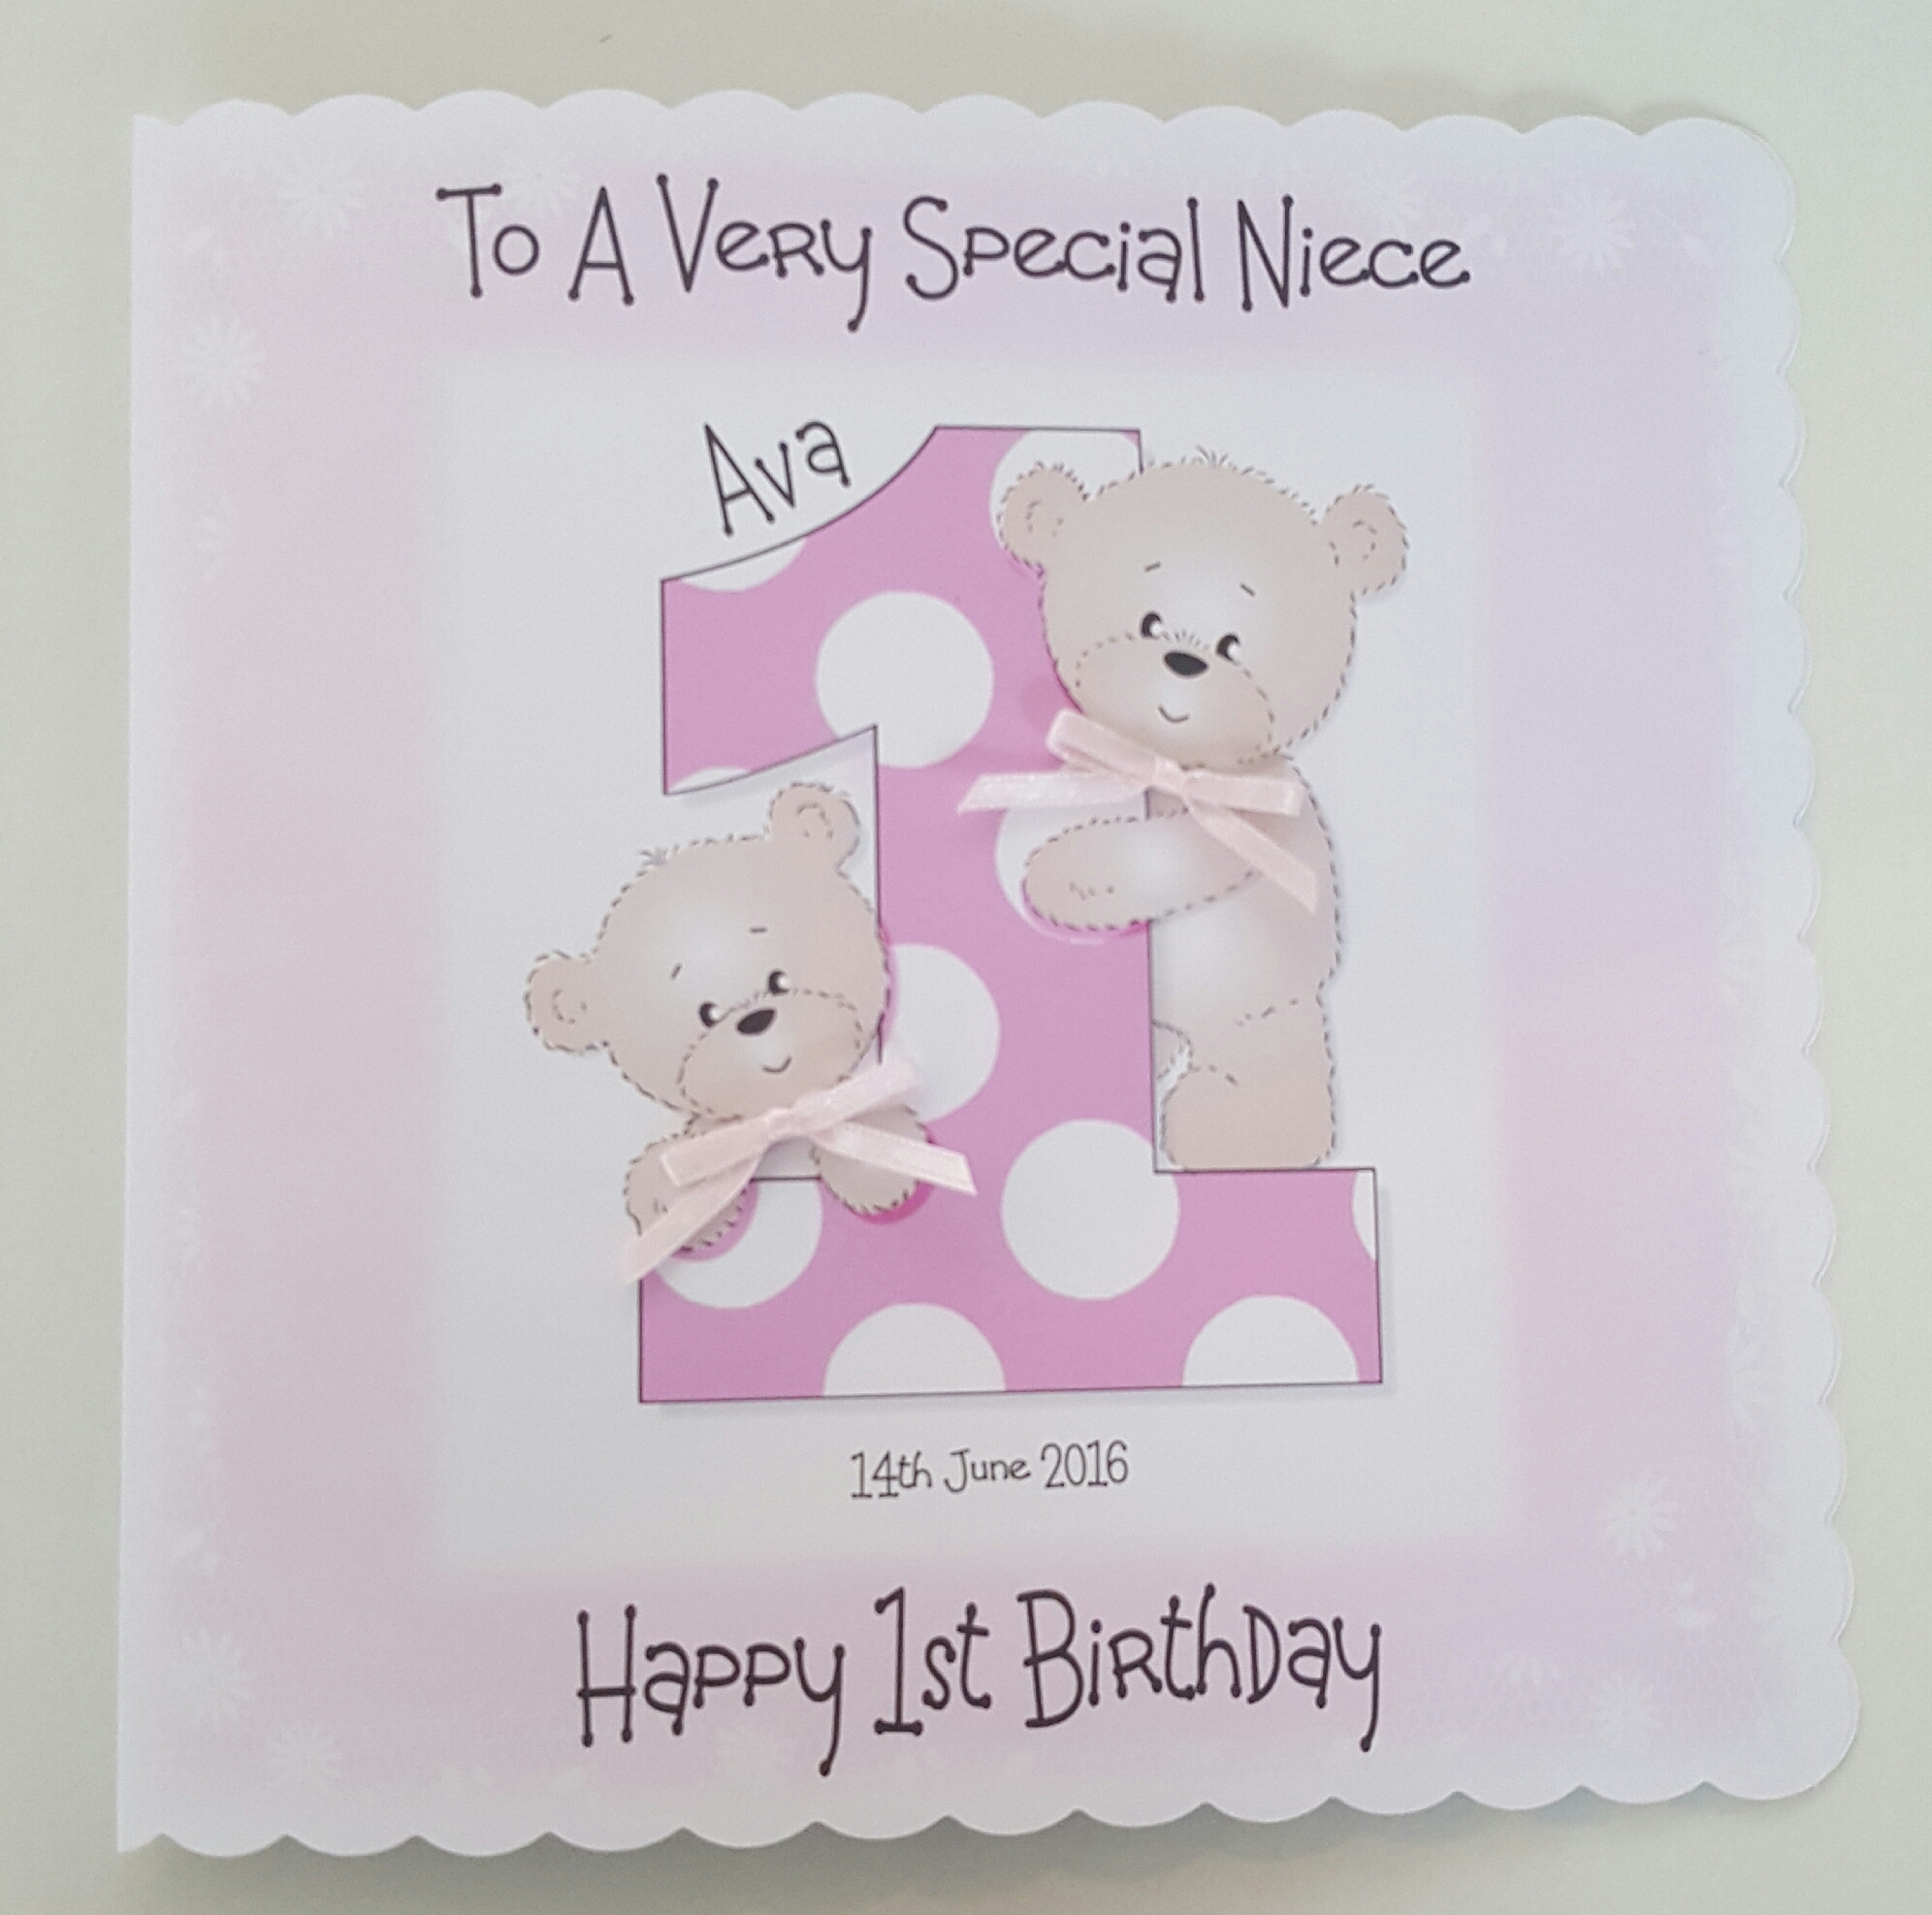 Personalised 8x8 1st Birthday Card Niece Daughter Granddaughter Any Age Relation Colour